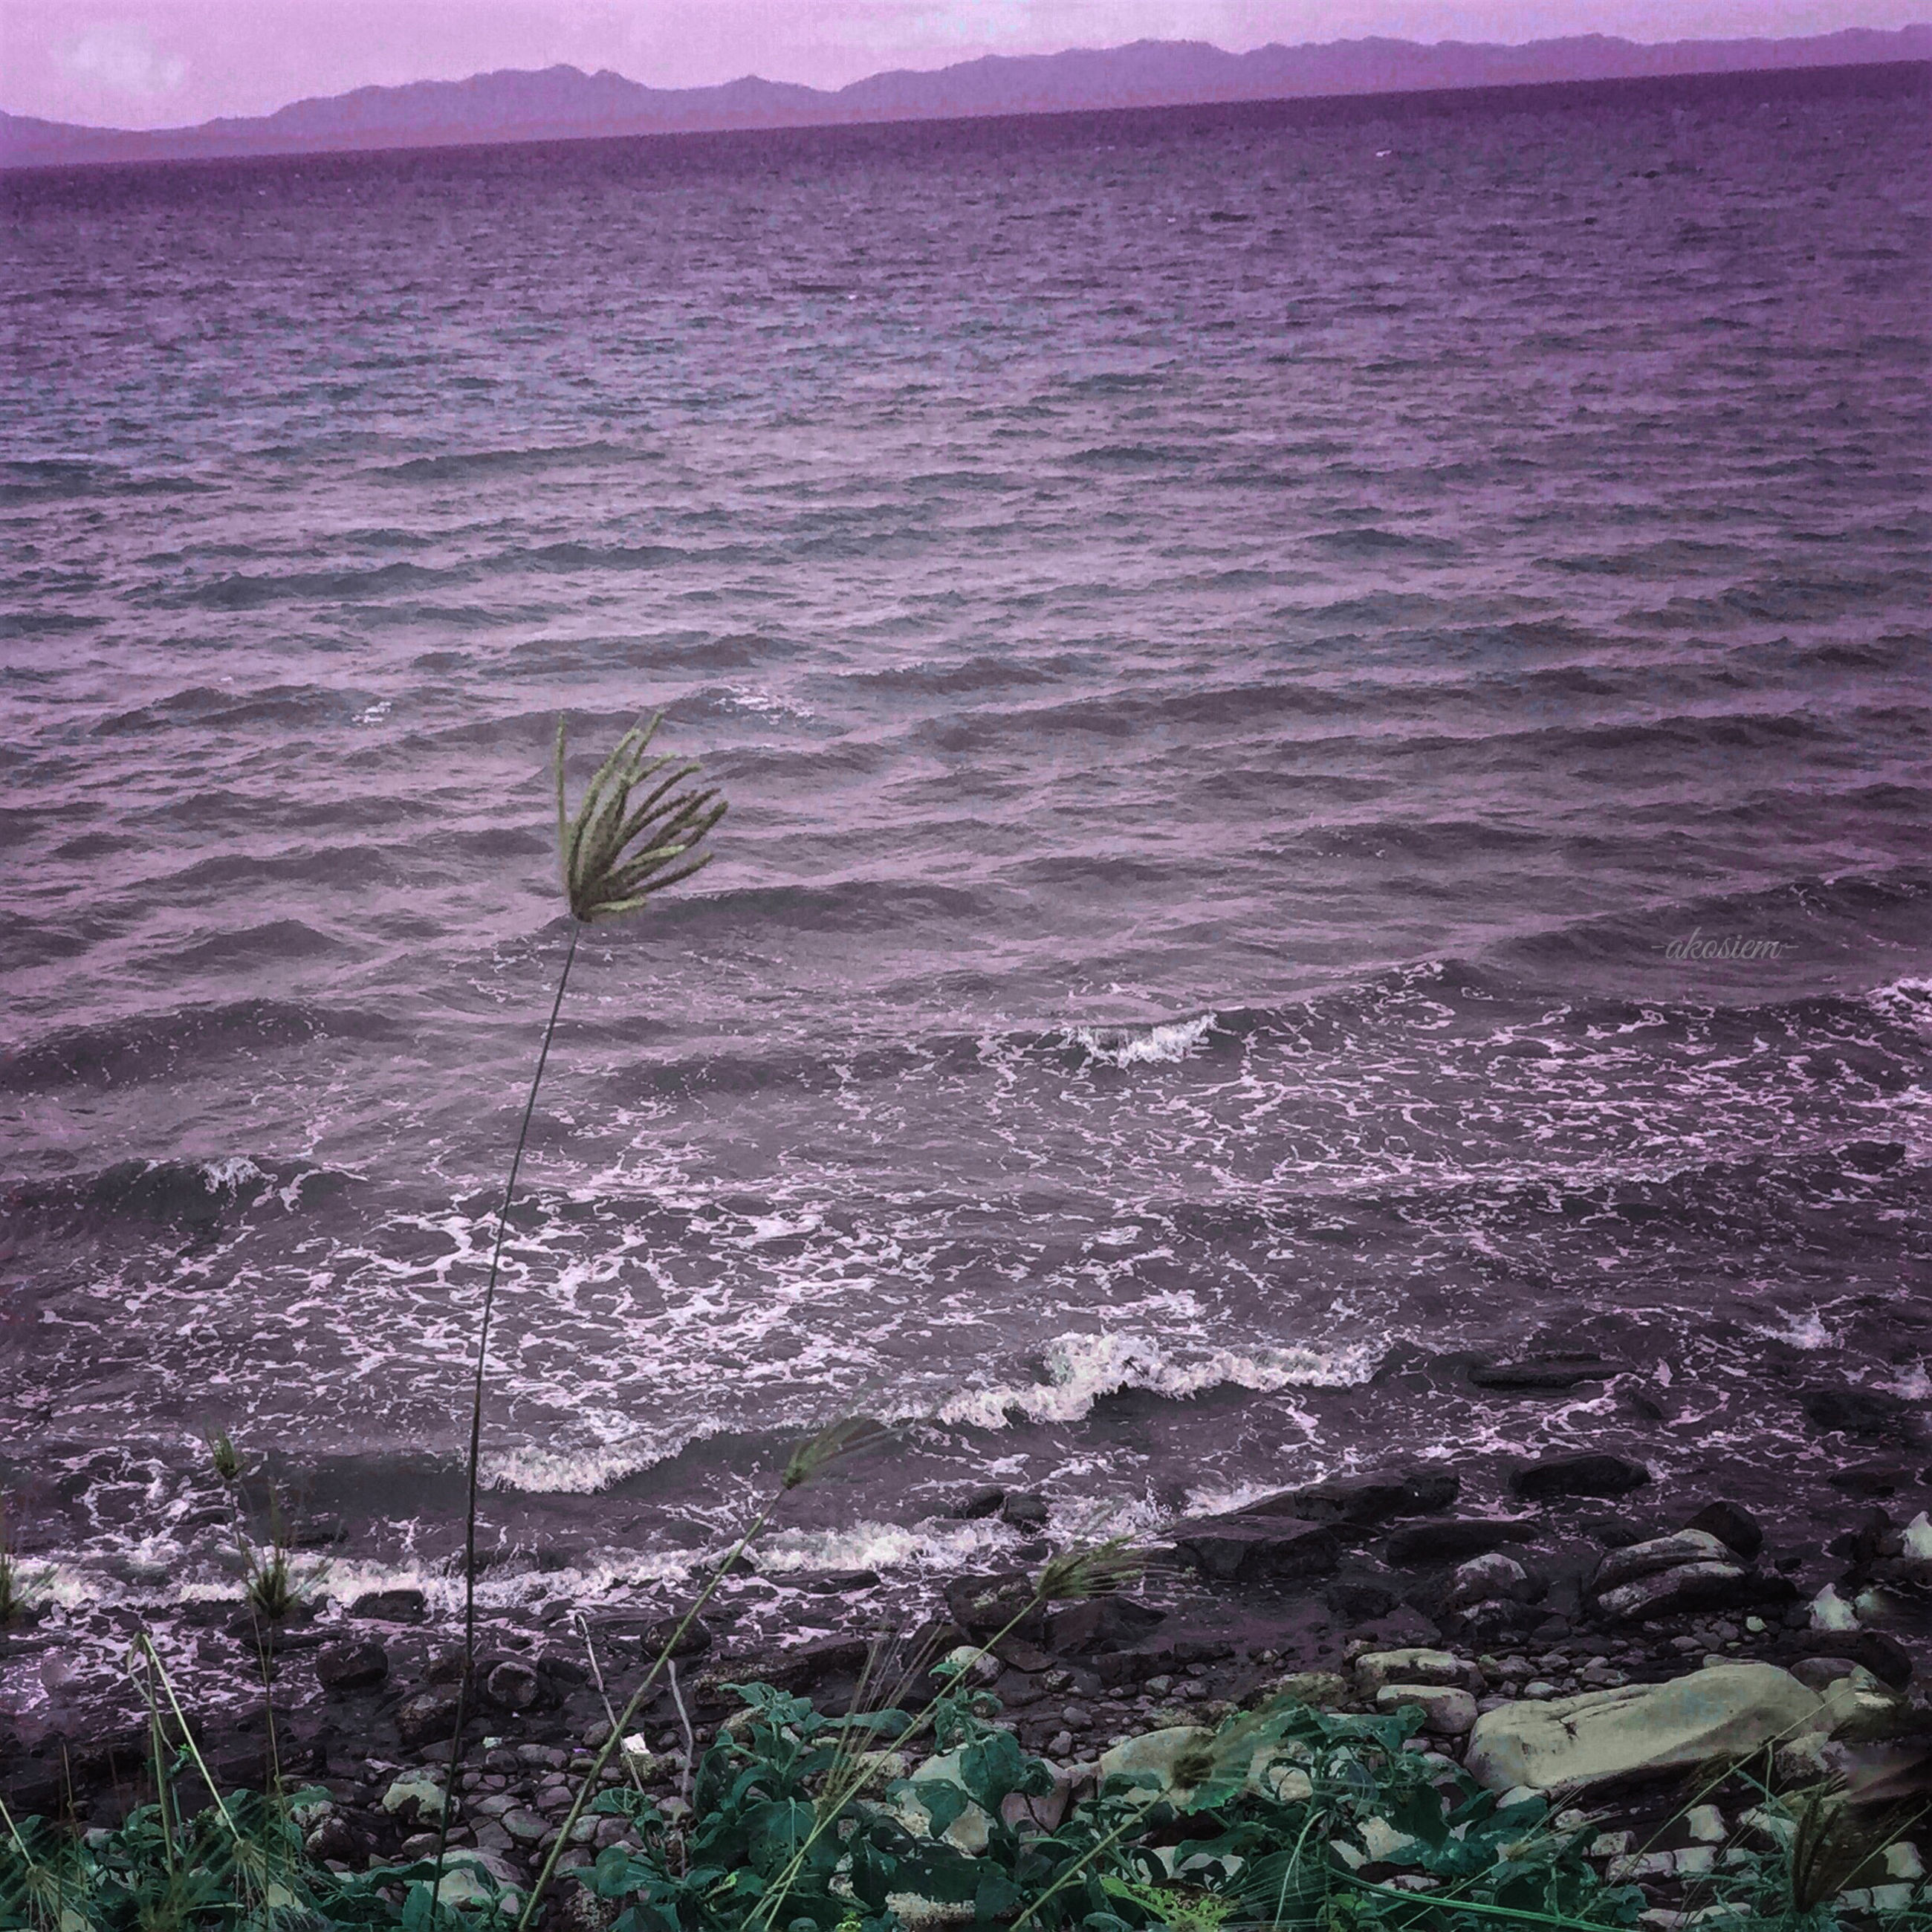 water, sea, tranquil scene, beauty in nature, scenics, tranquility, nature, high angle view, plant, growth, idyllic, coastline, horizon over water, outdoors, no people, day, sky, rippled, remote, landscape